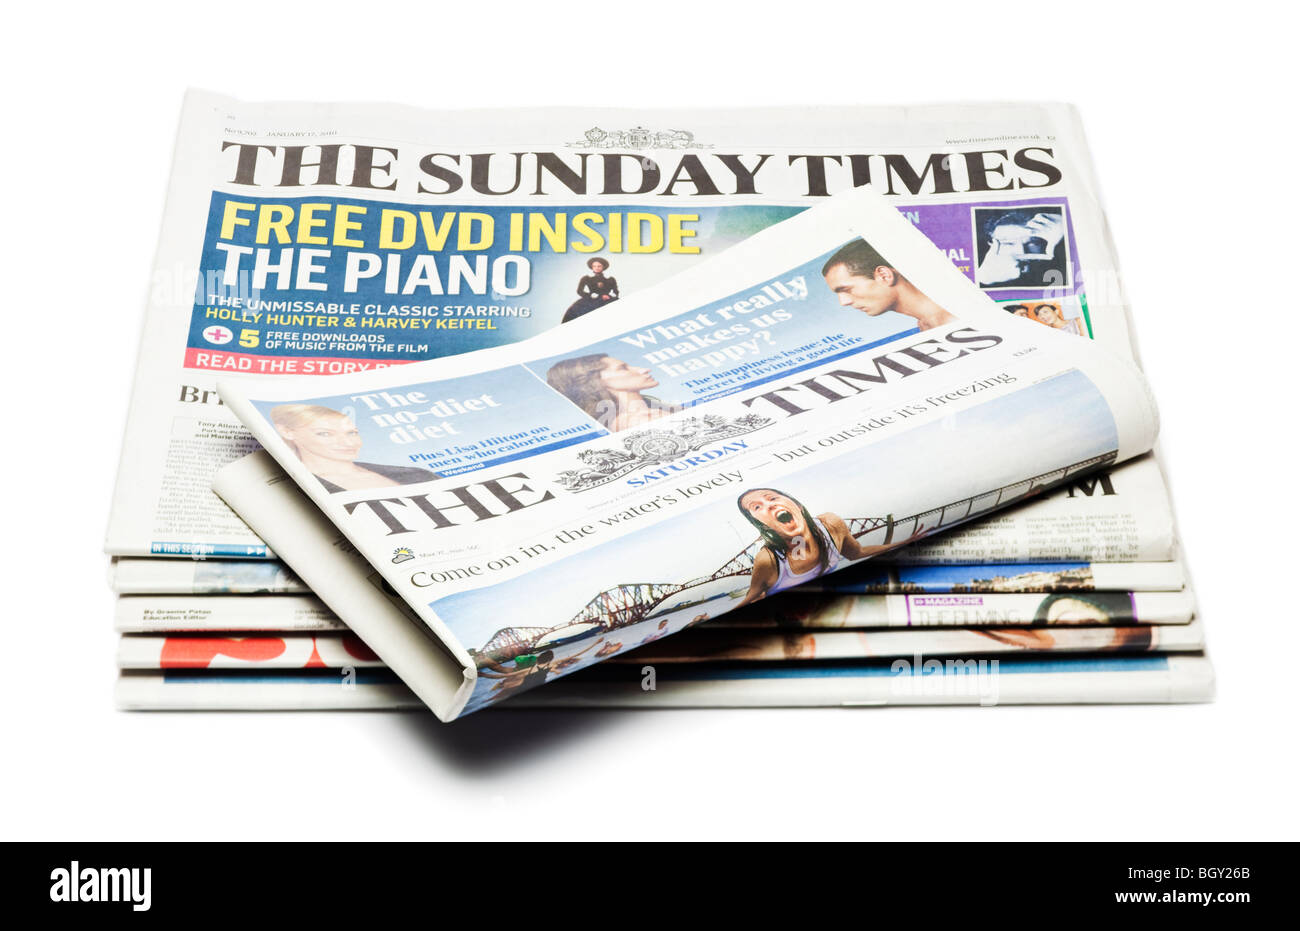 UK Newspapers including The Times and The Sunday Times - Stock Image